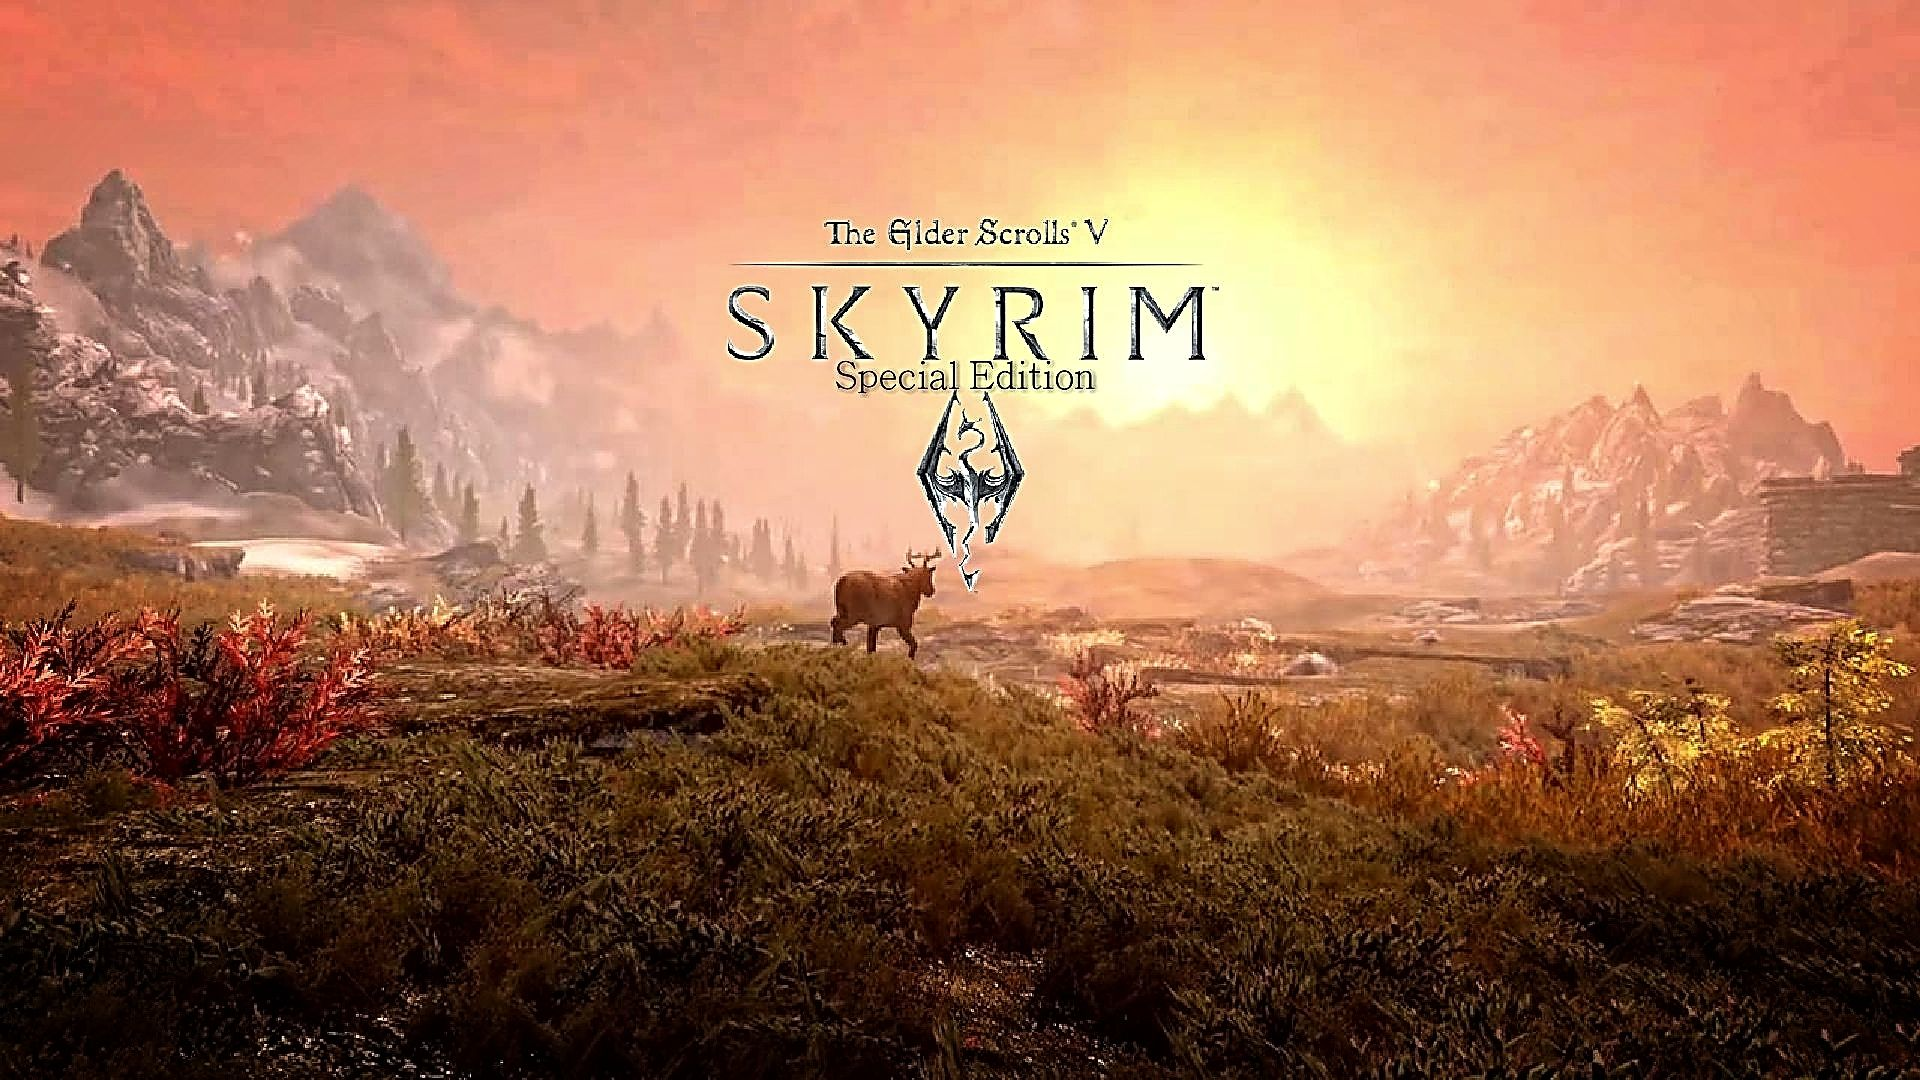 The Elder Scrolls V: Skyrim (Remastered) Special Edition Sistem Gereksinimleri